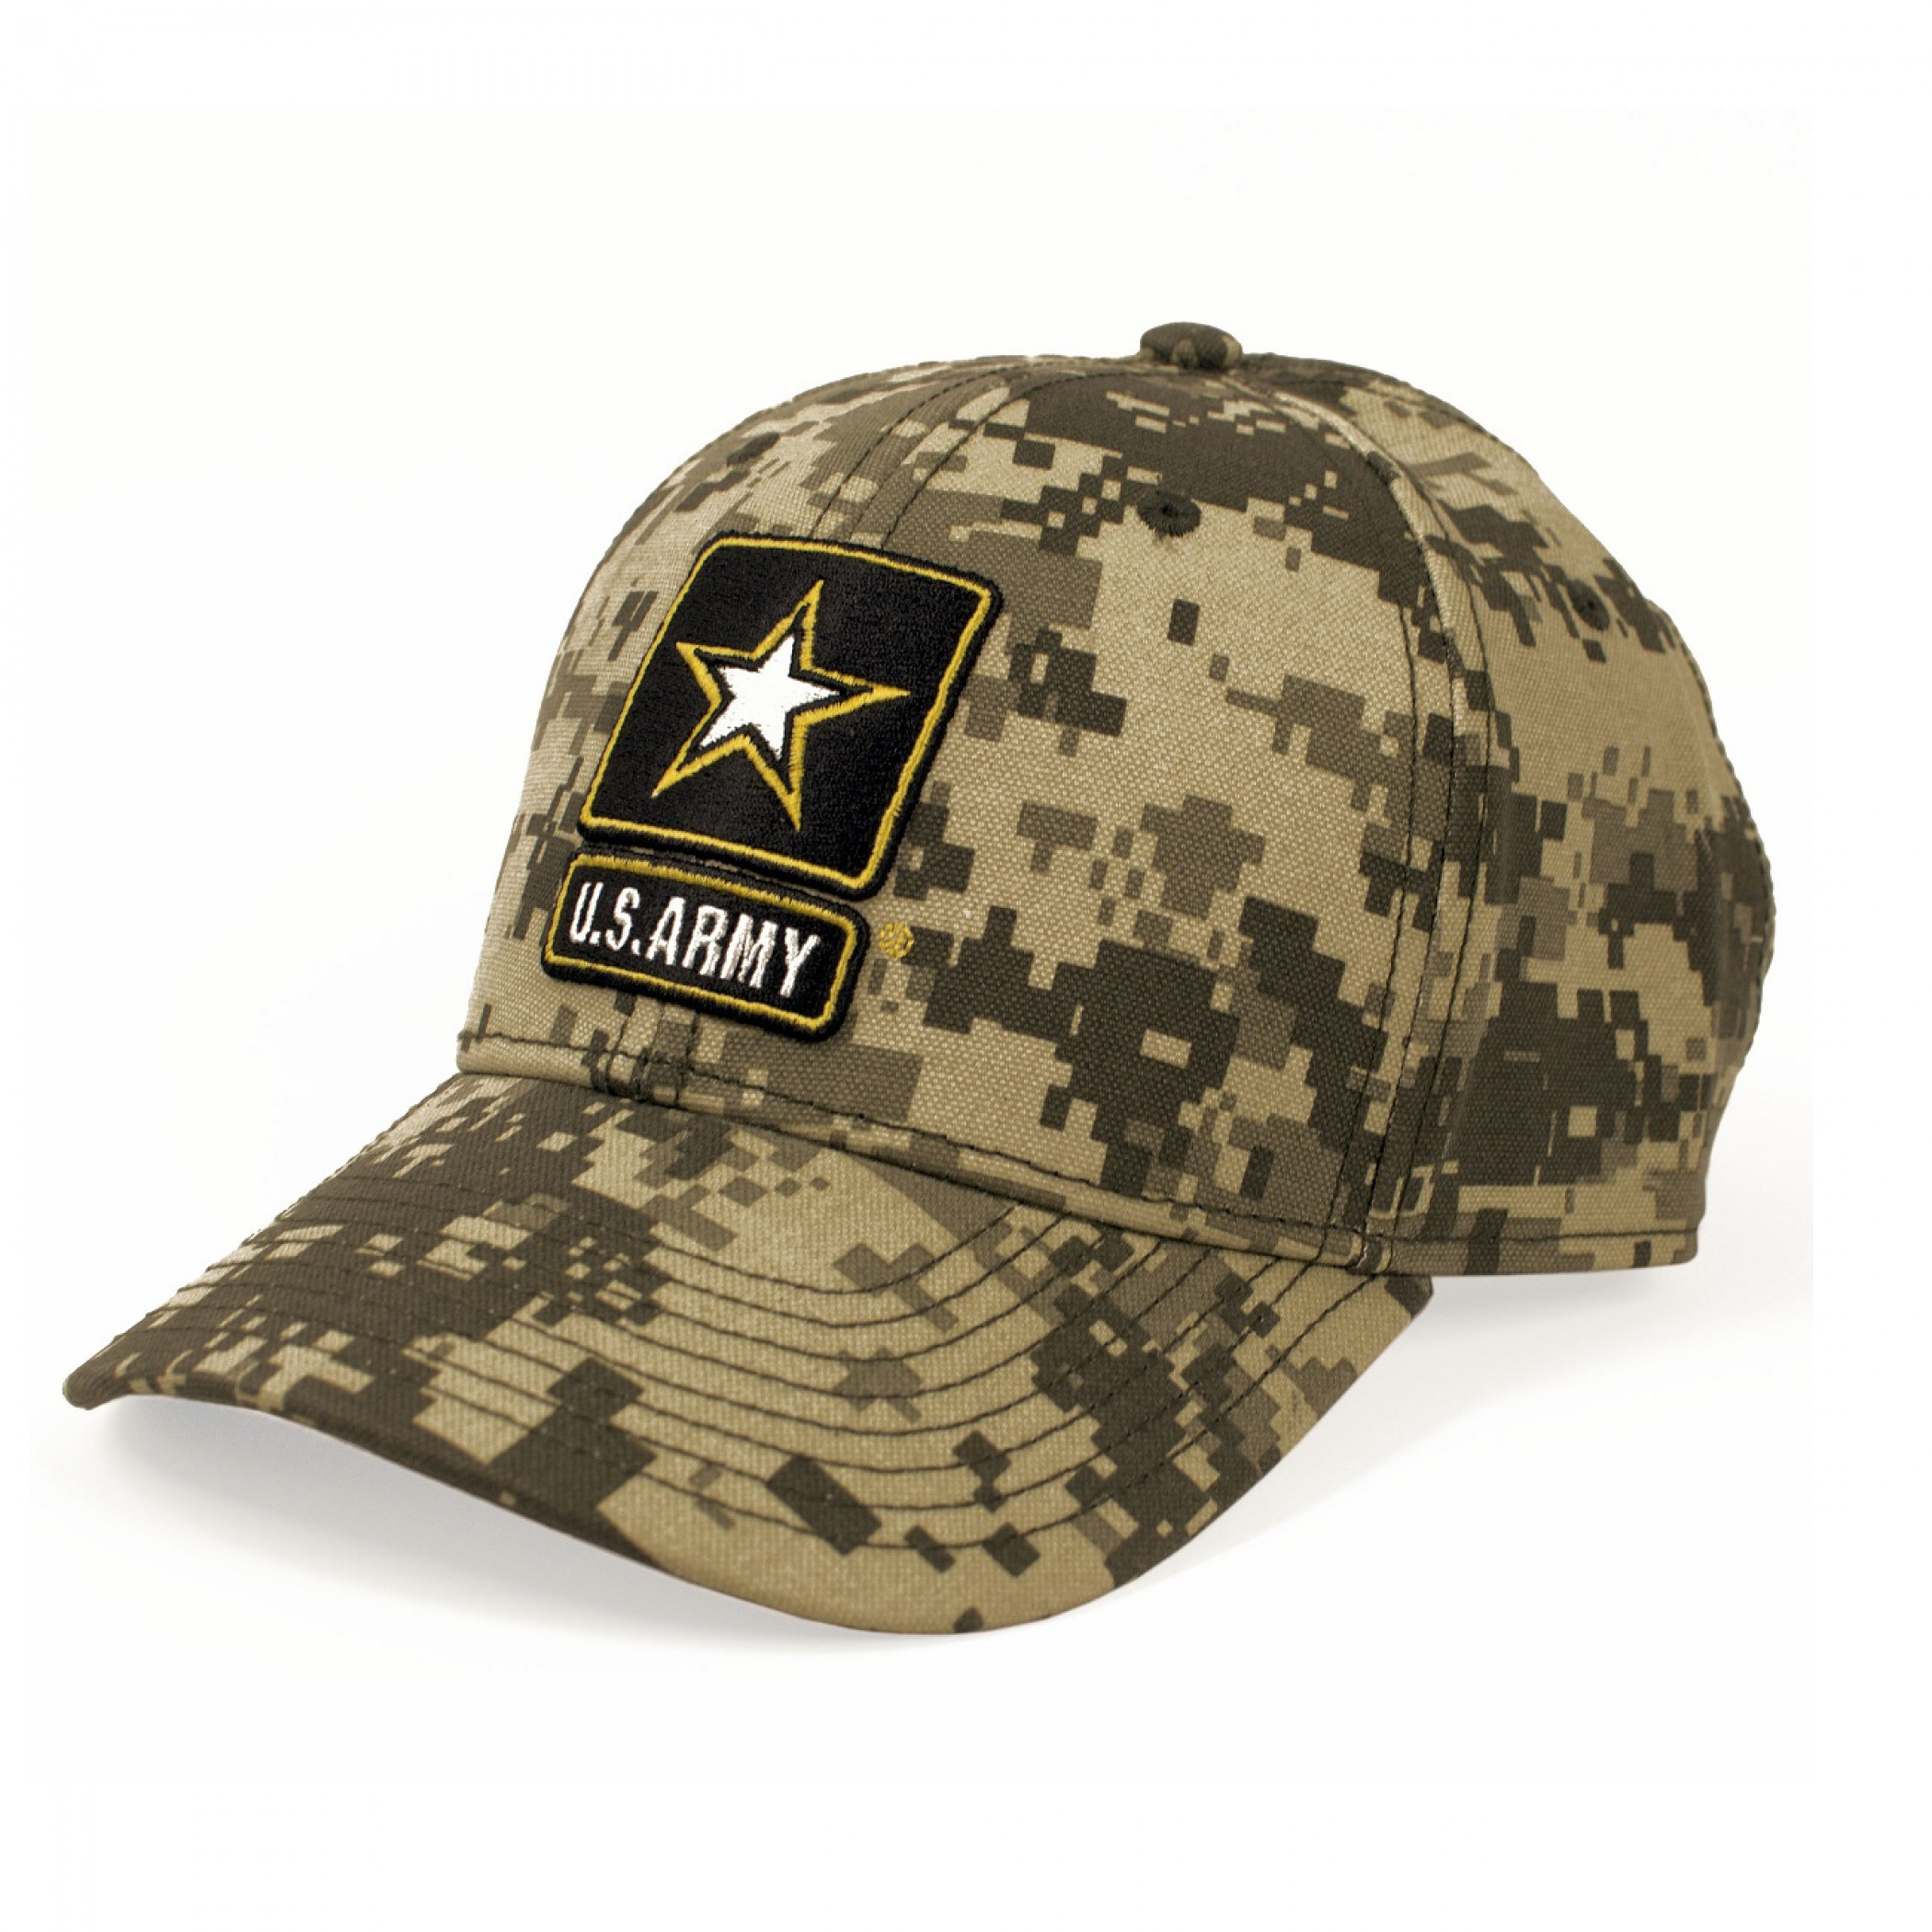 ARMY Military Camo Hat